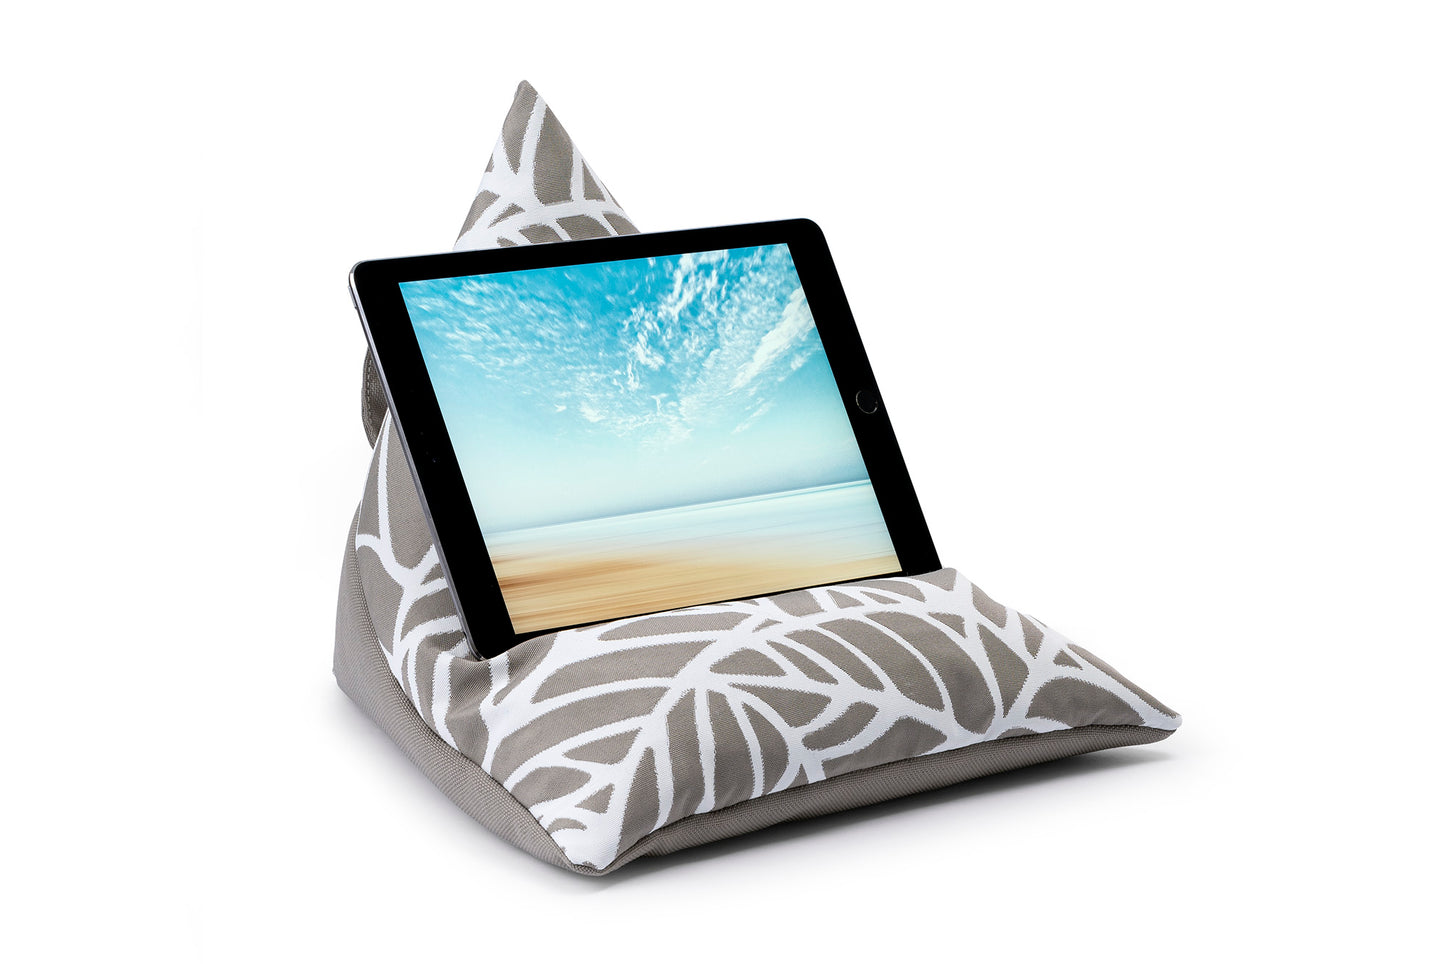 iPad, Tablet & eReader Bean Bag Stand in Palm Pumice/ Pumice Base